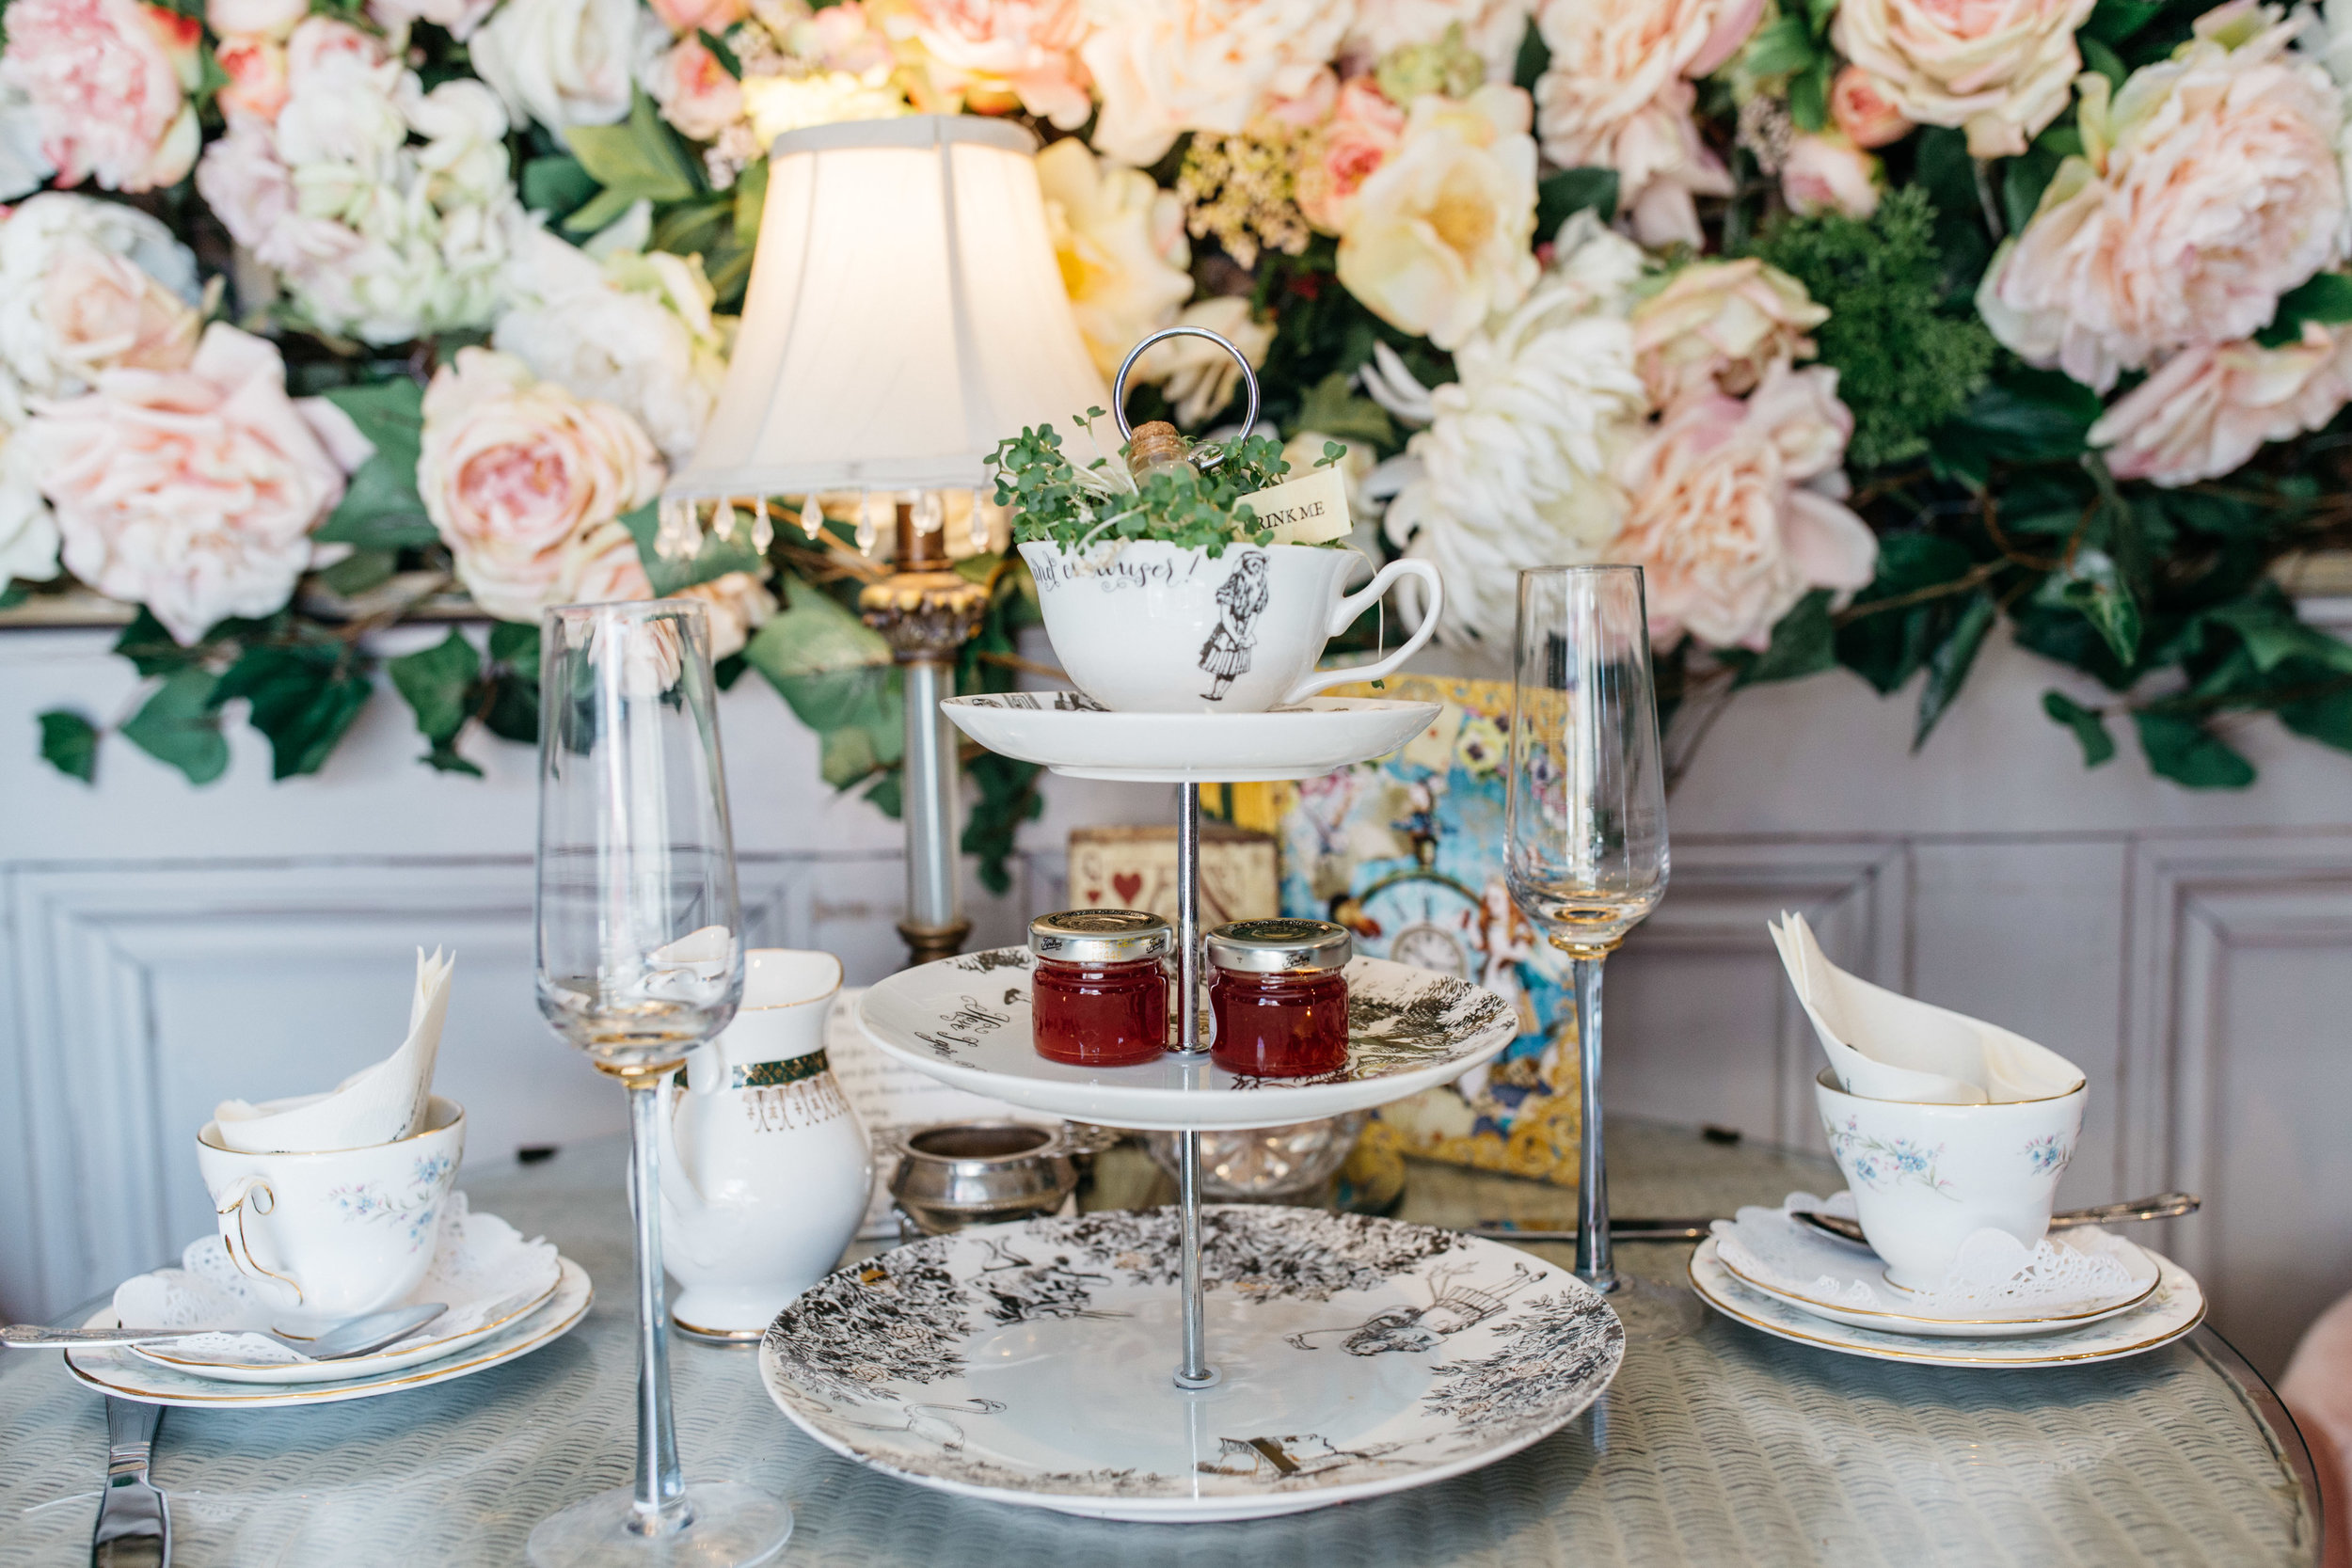 Alice-in-Wonderland-Afternoon-tea-Chloe-Lee-Photo